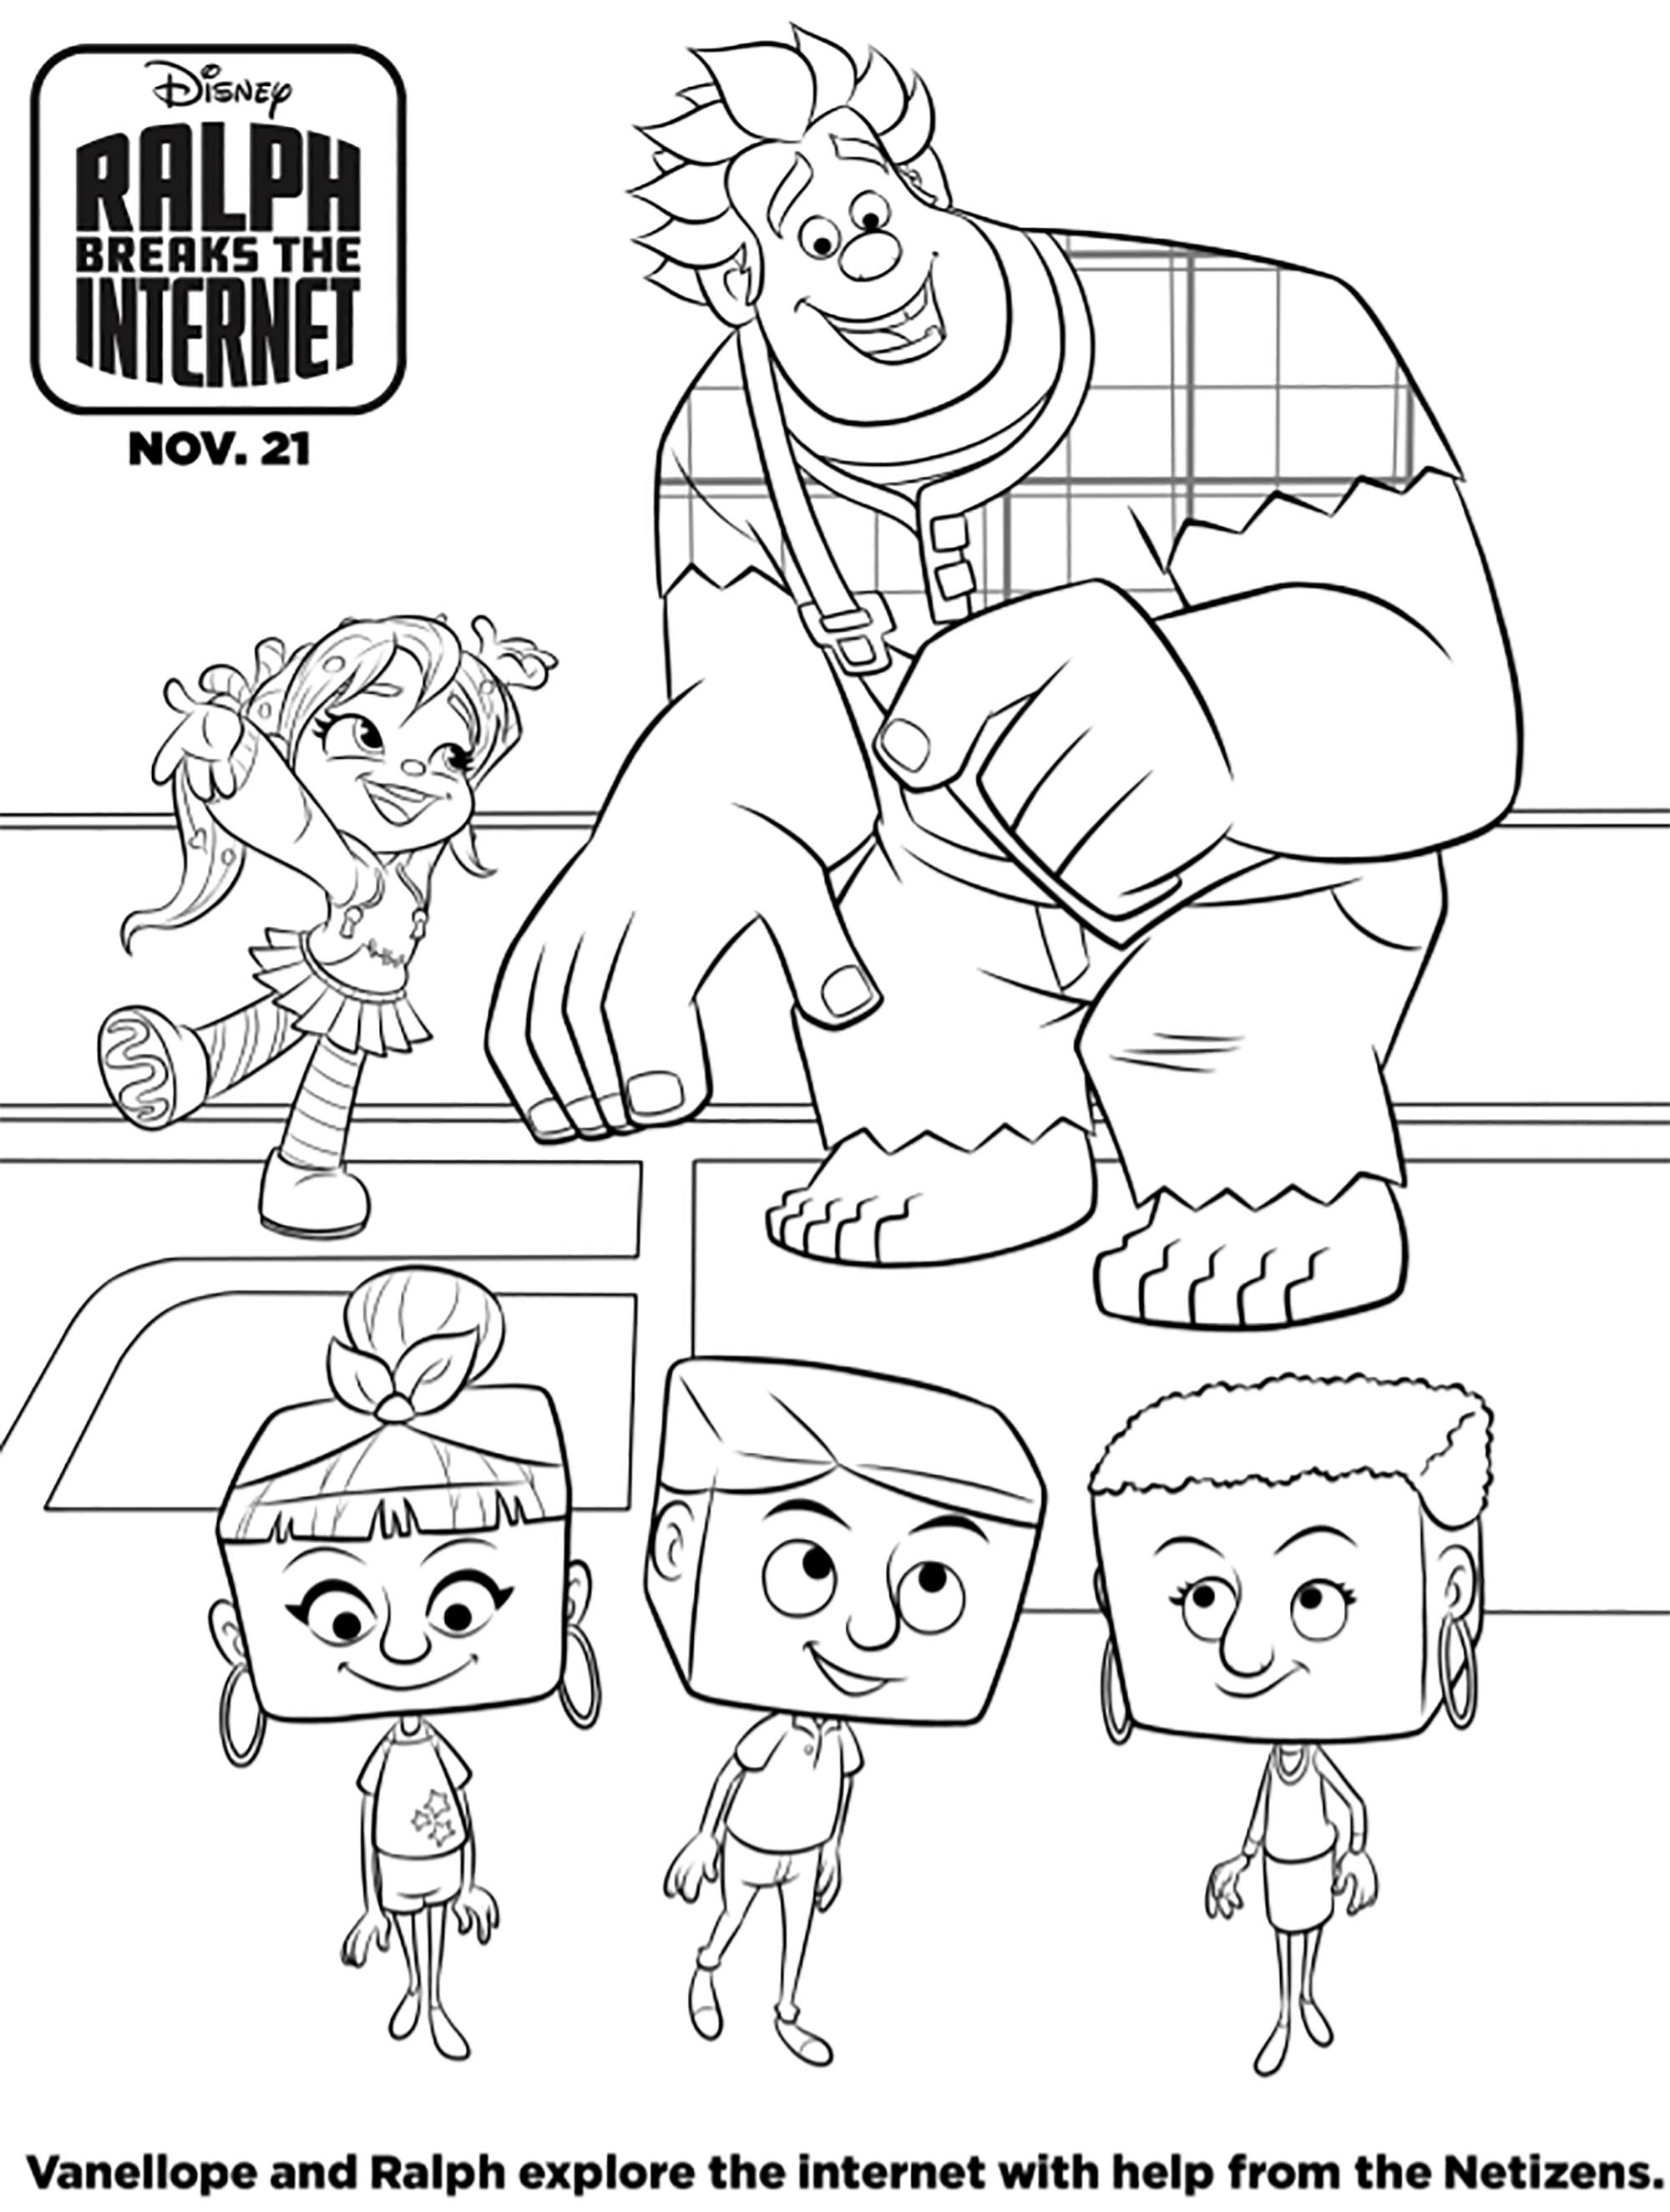 Funny Wreck it Ralph 2.0 coloring page